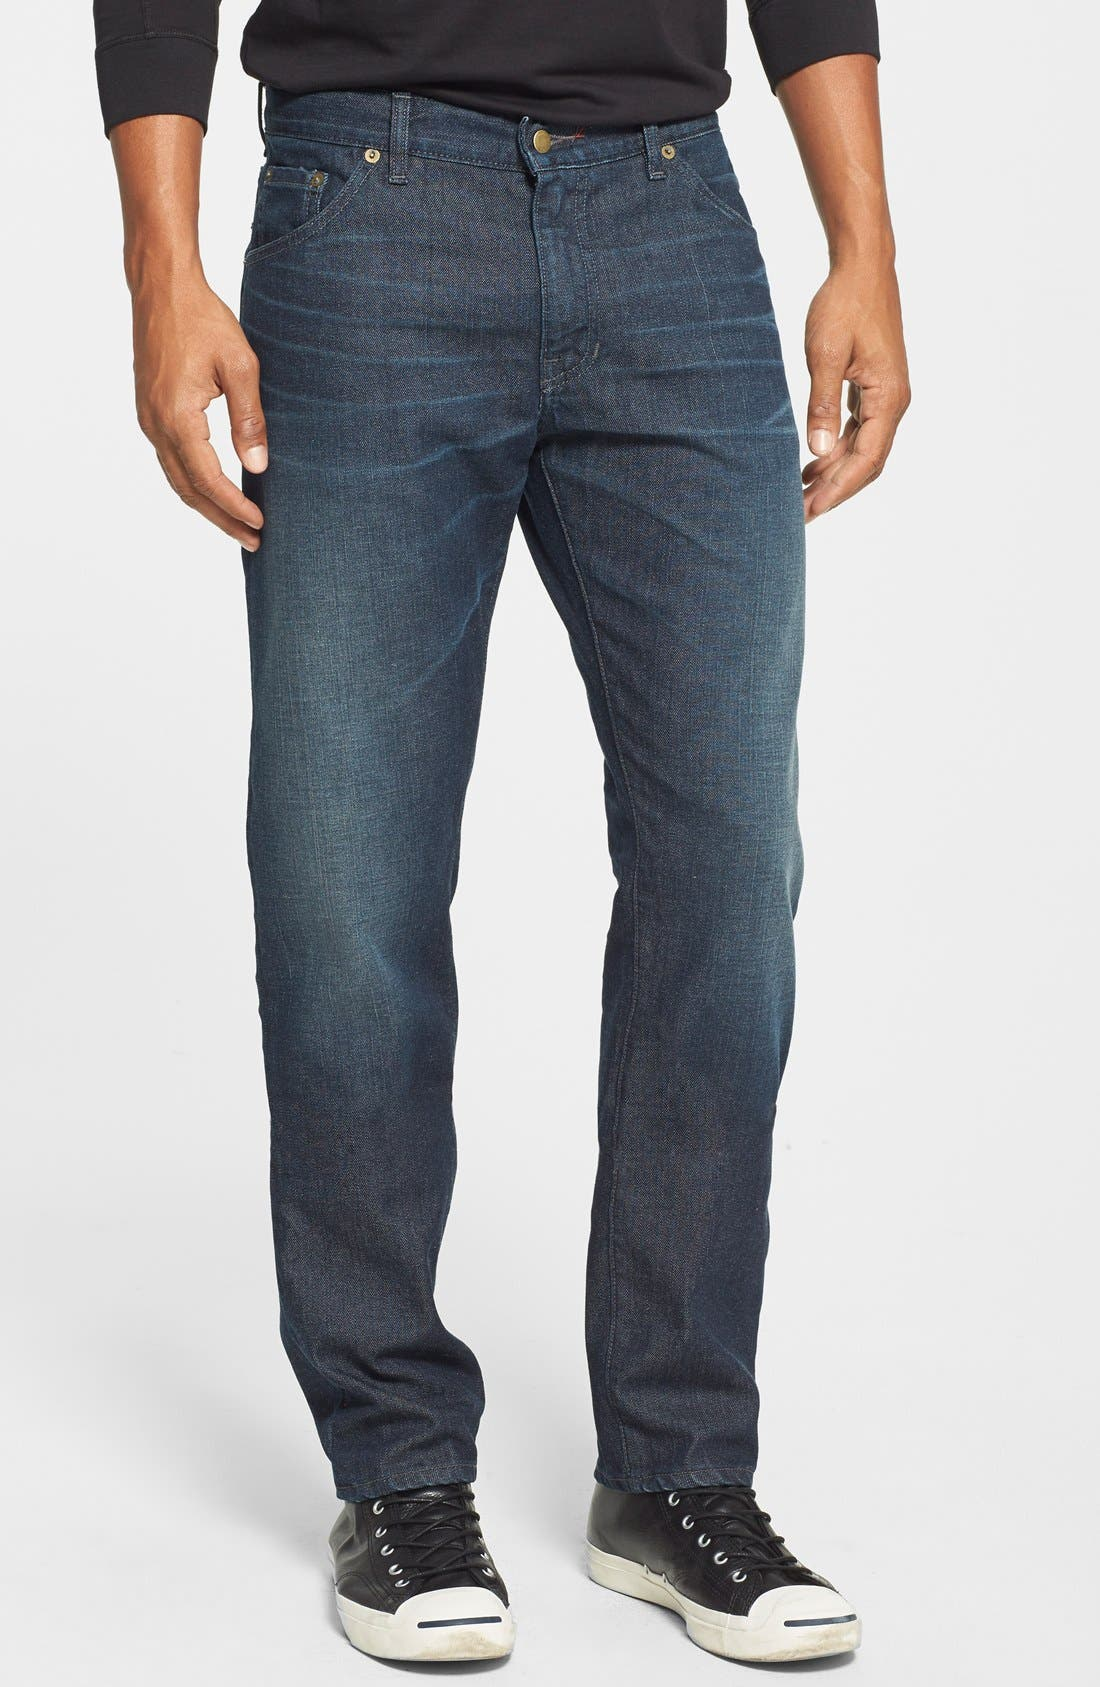 'Martin' Slim Fit Jeans,                             Main thumbnail 1, color,                             MASON